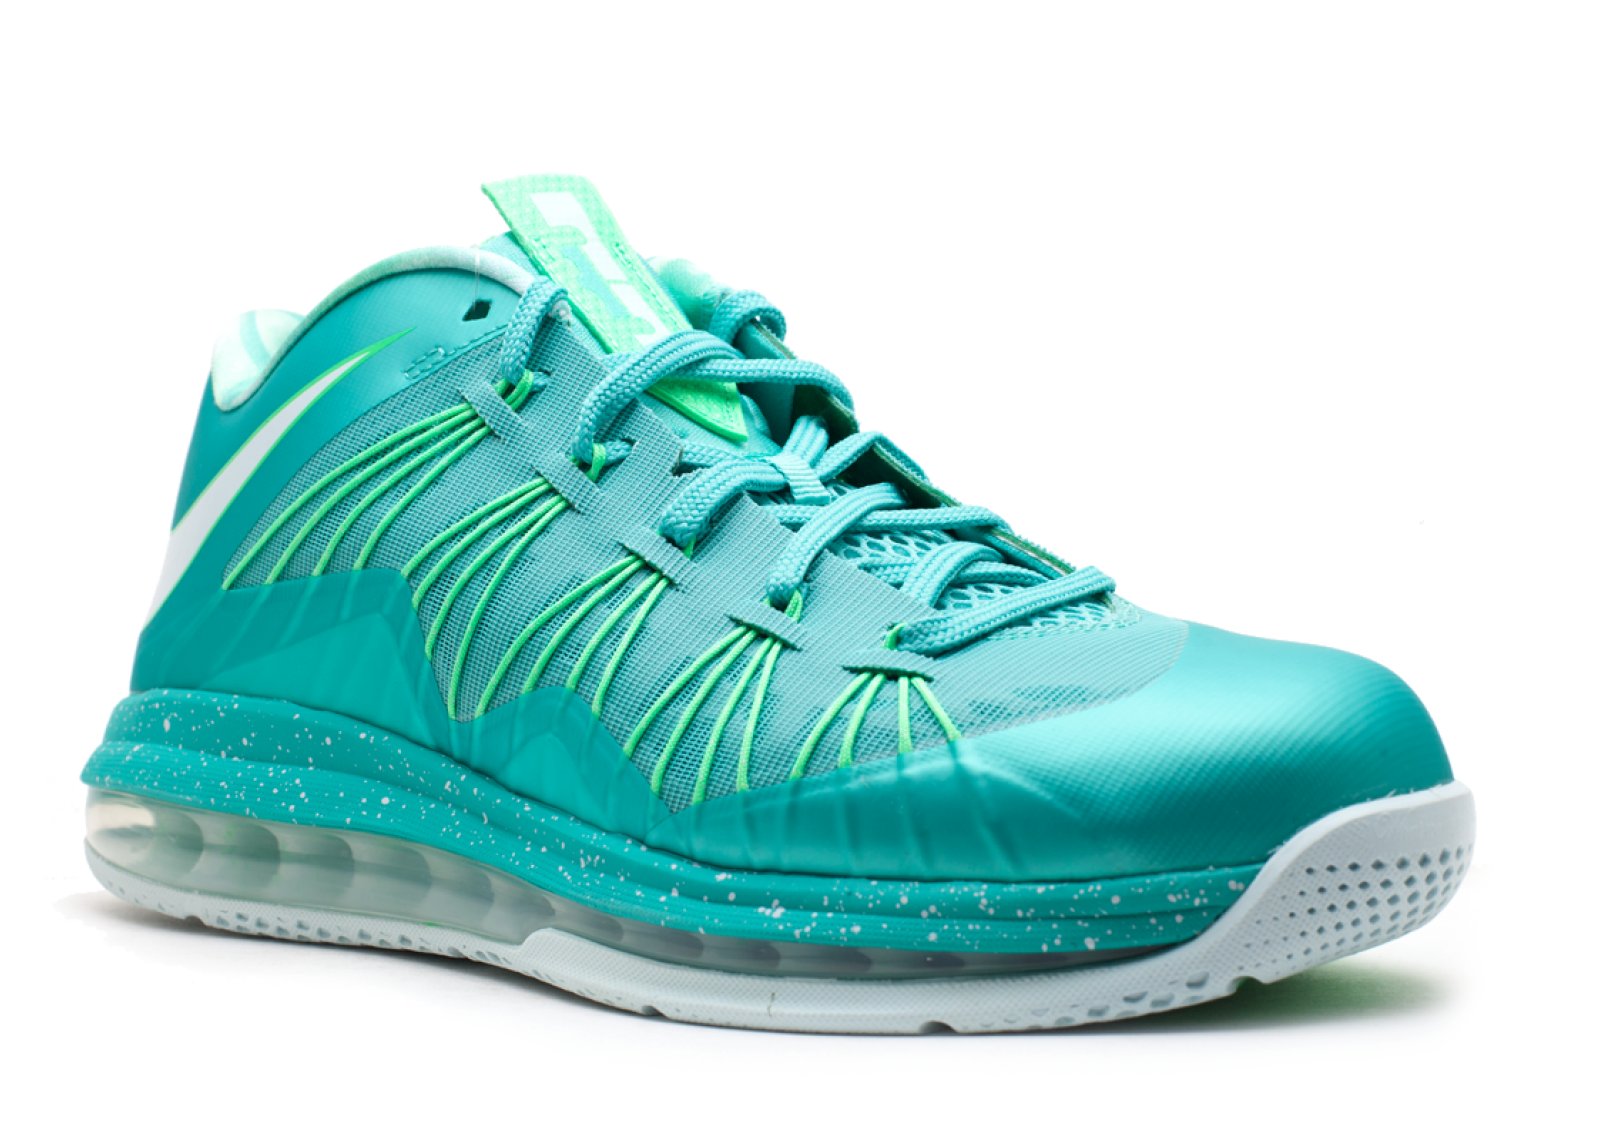 sports shoes 8a4e6 ed6cd ... inexpensive air max lebron 10 low easter 579765 300 2c924 555ae